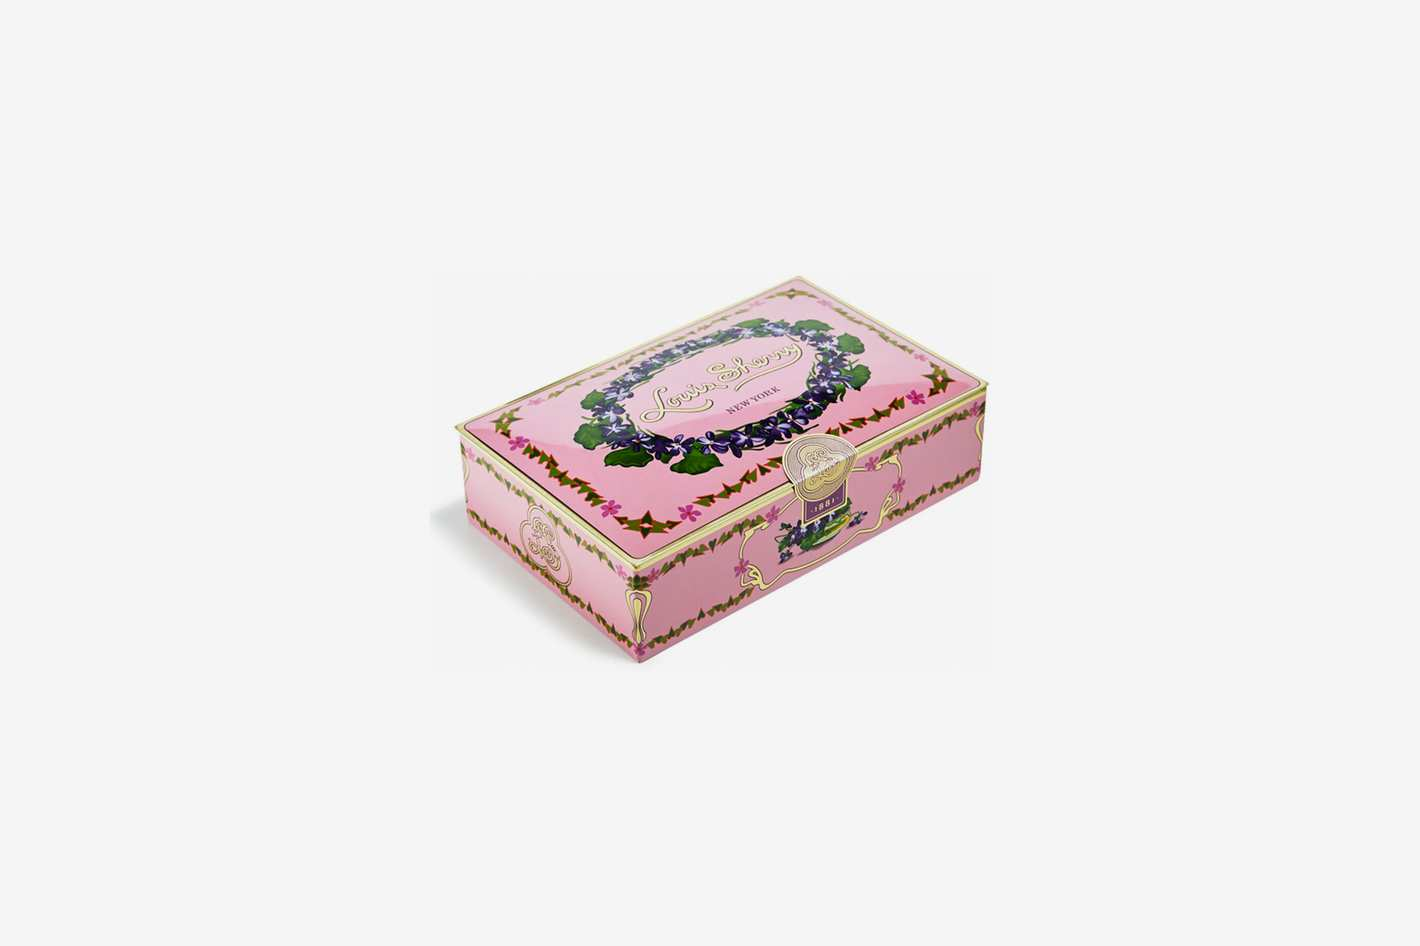 Louis Sherry Orchid 12-Piece Chocolate Truffle Tin